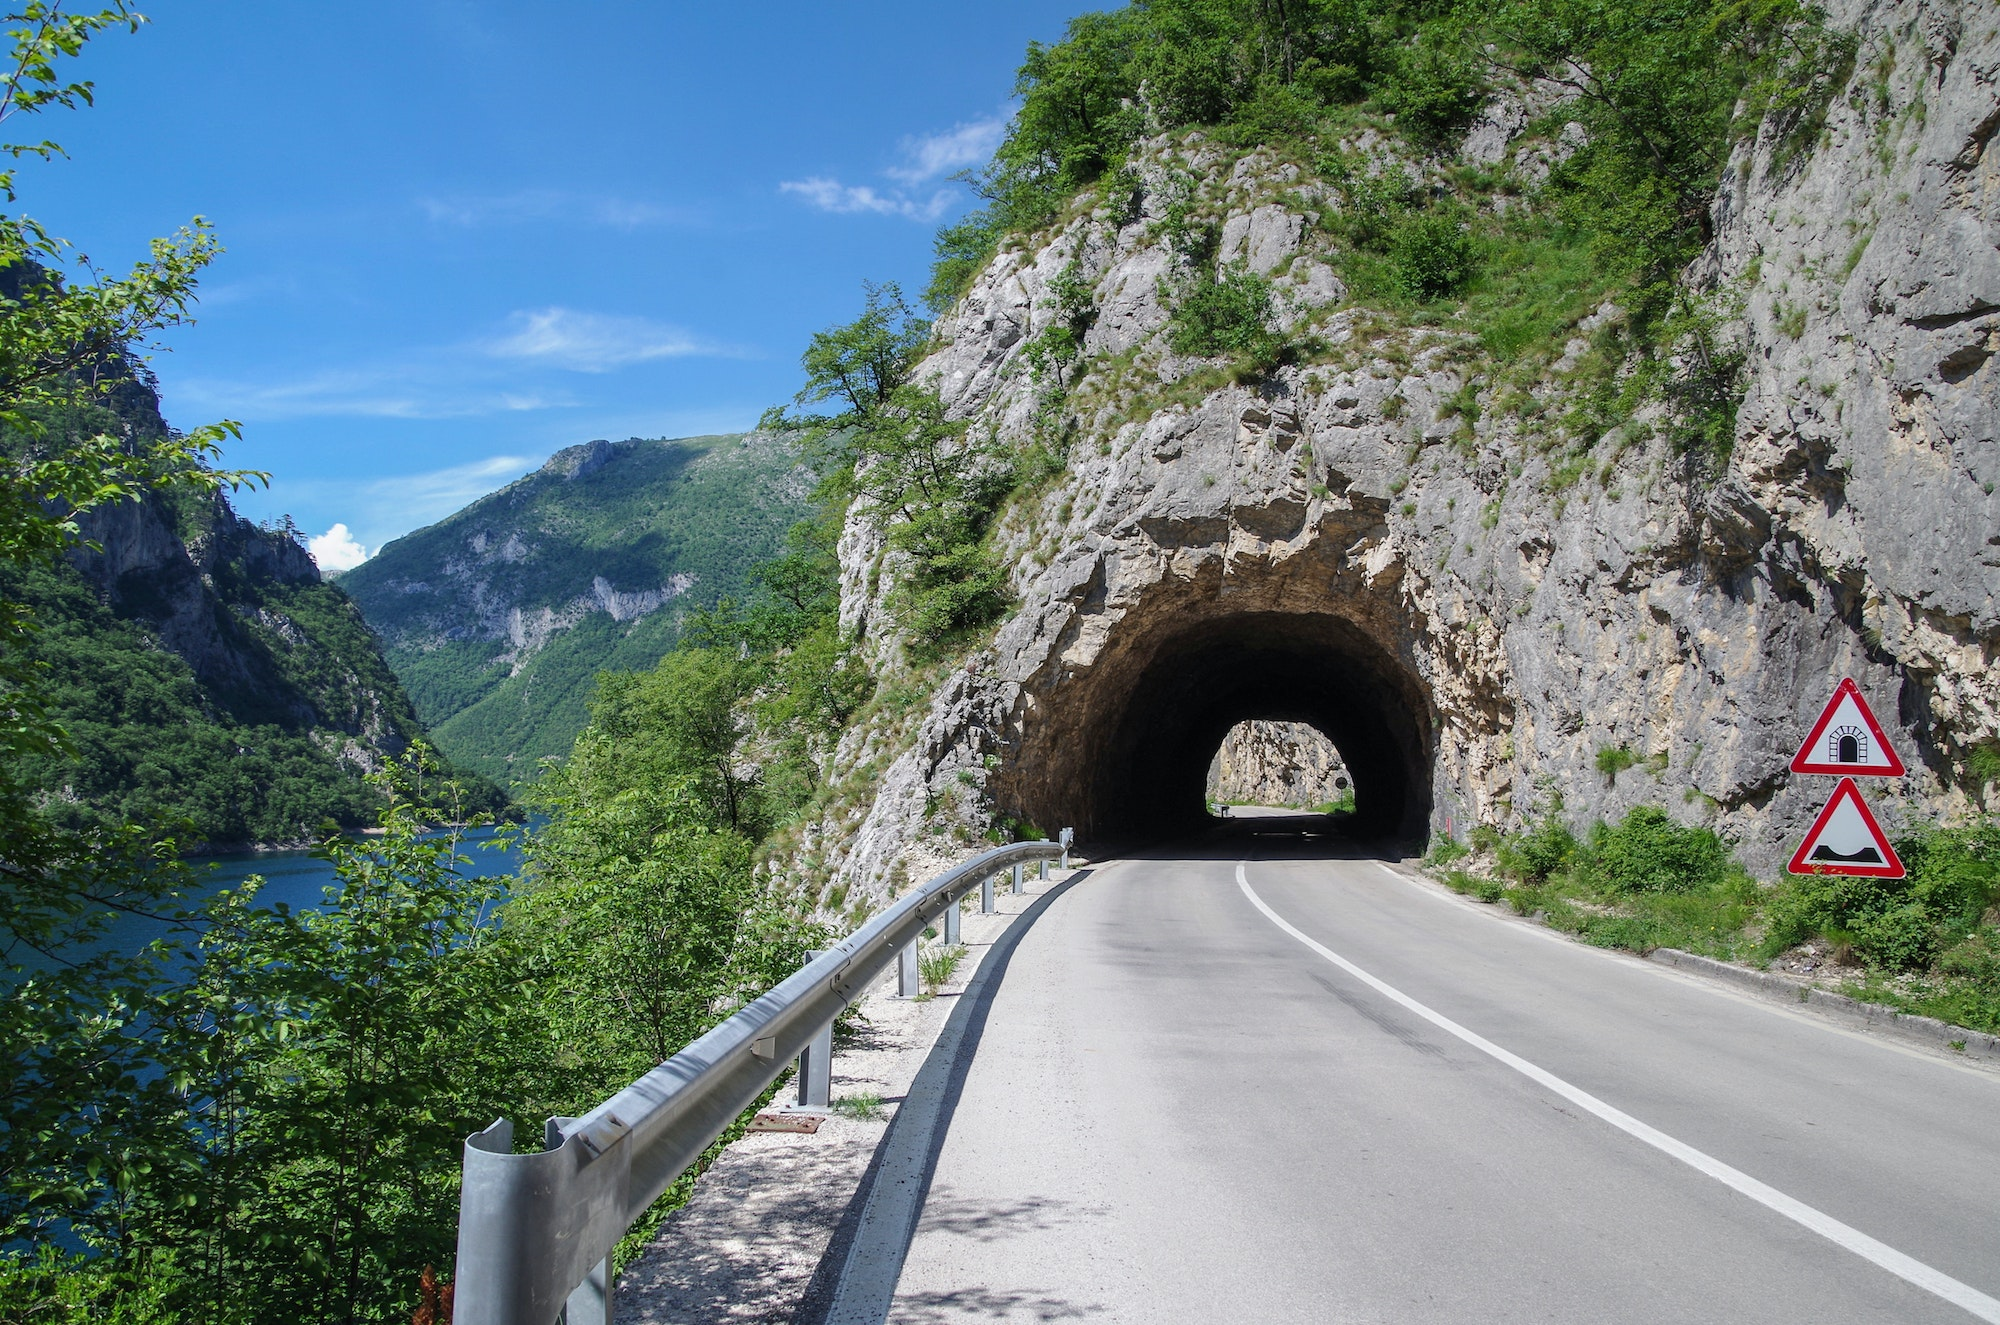 Located close to the border with Bosnia and Herzegovina, Montenegro's Piva Canyon Road is part of the European route E762.